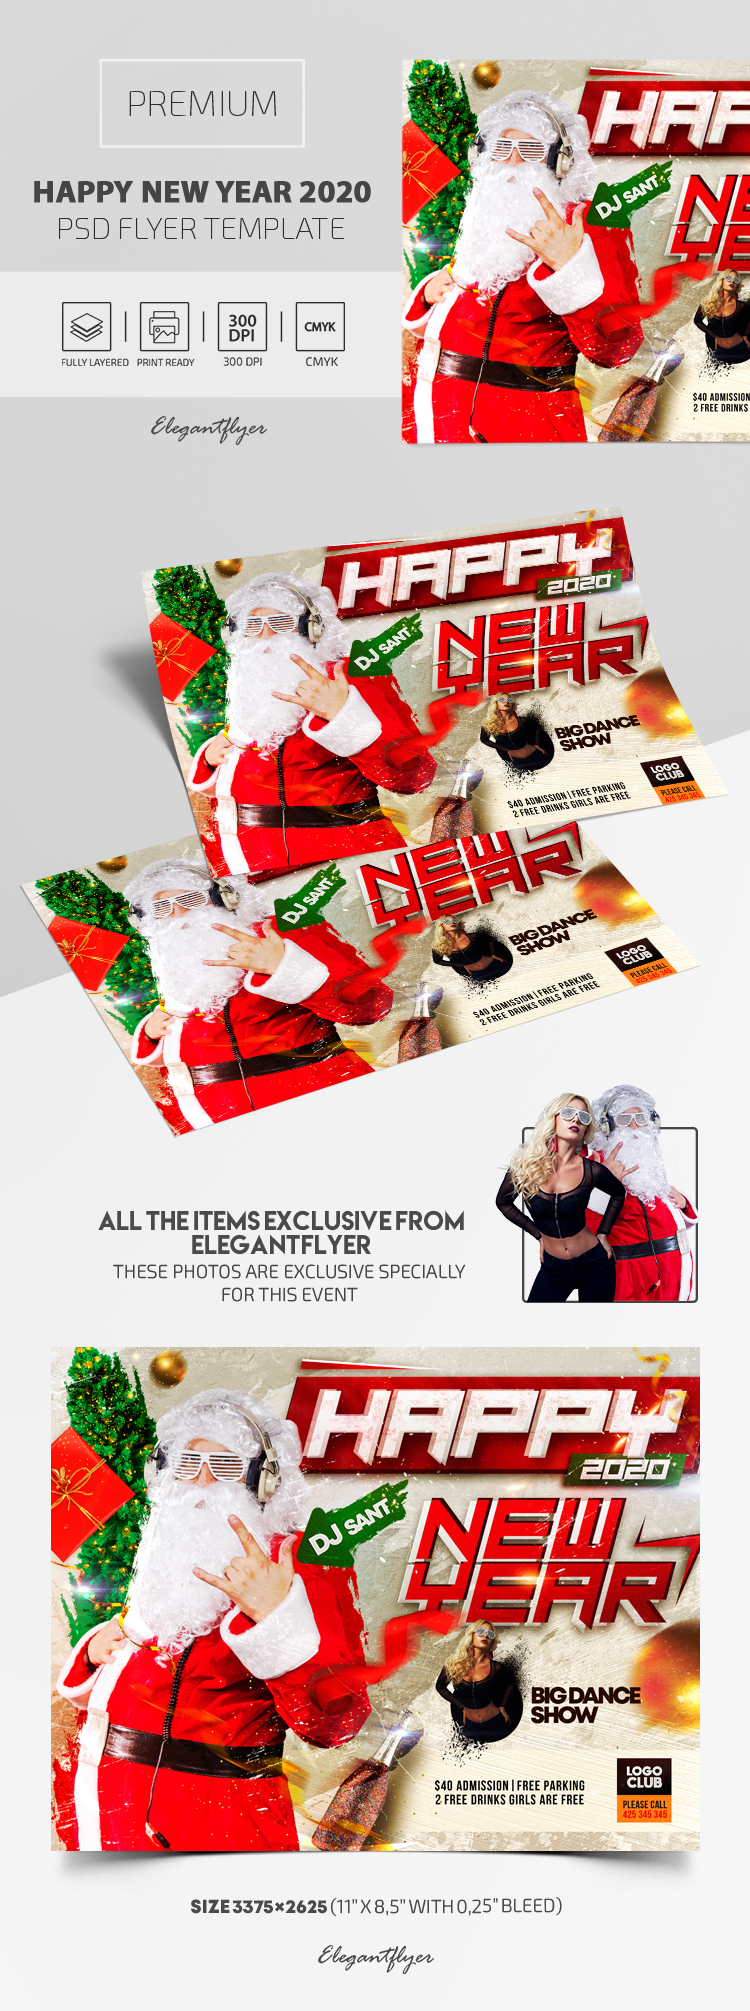 Happy New Year 2020 – Premium PSD Flyer Template